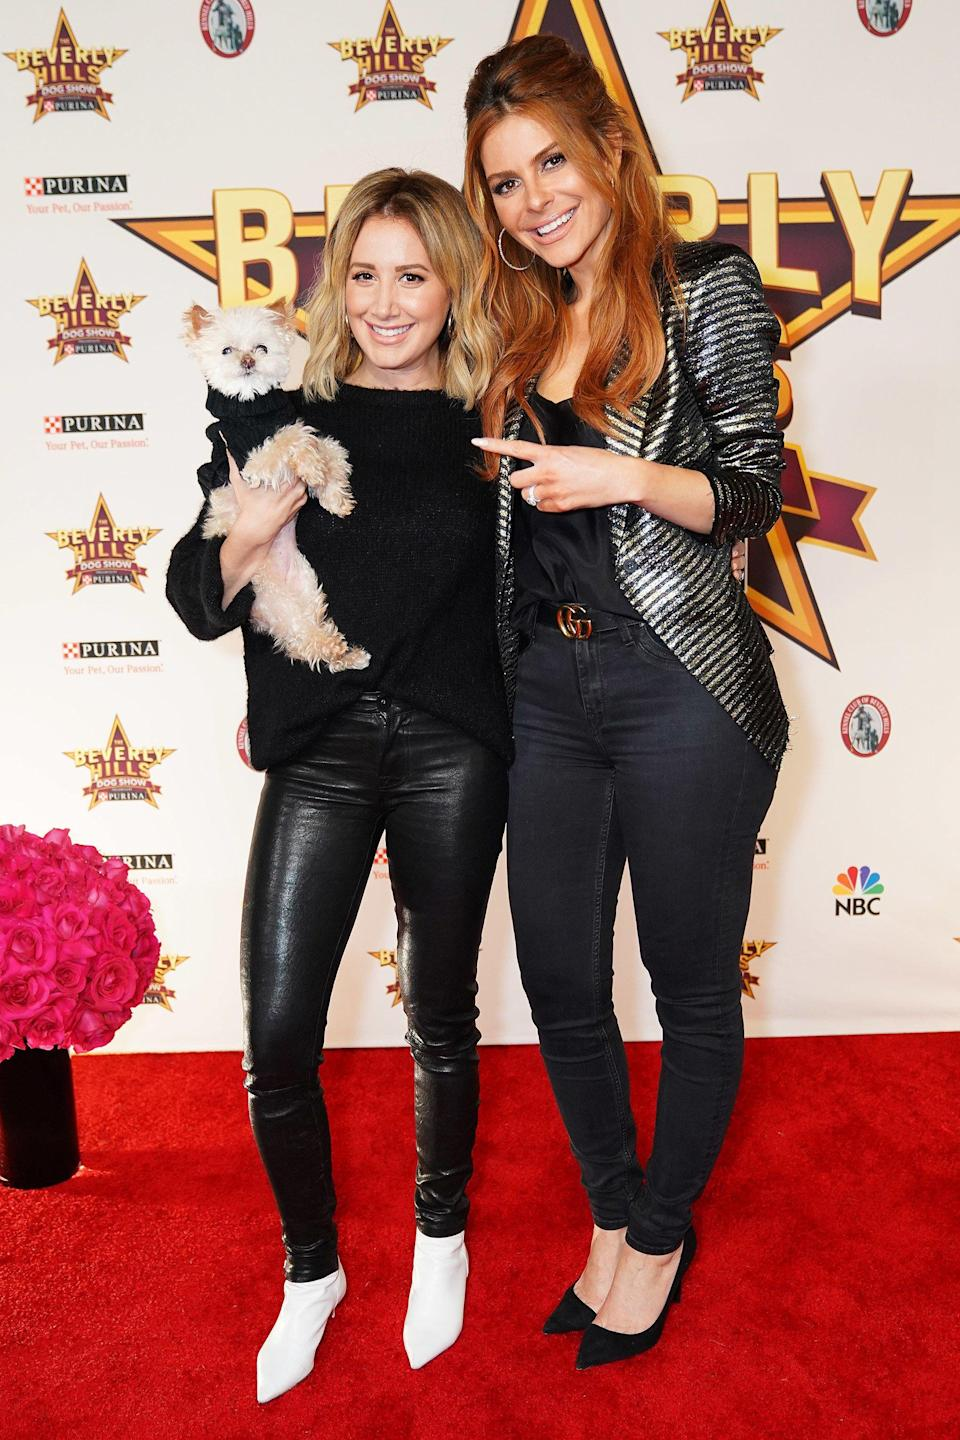 Tisdale also made sure she (and her dog Maui) got a chance to catch up with Menounos.